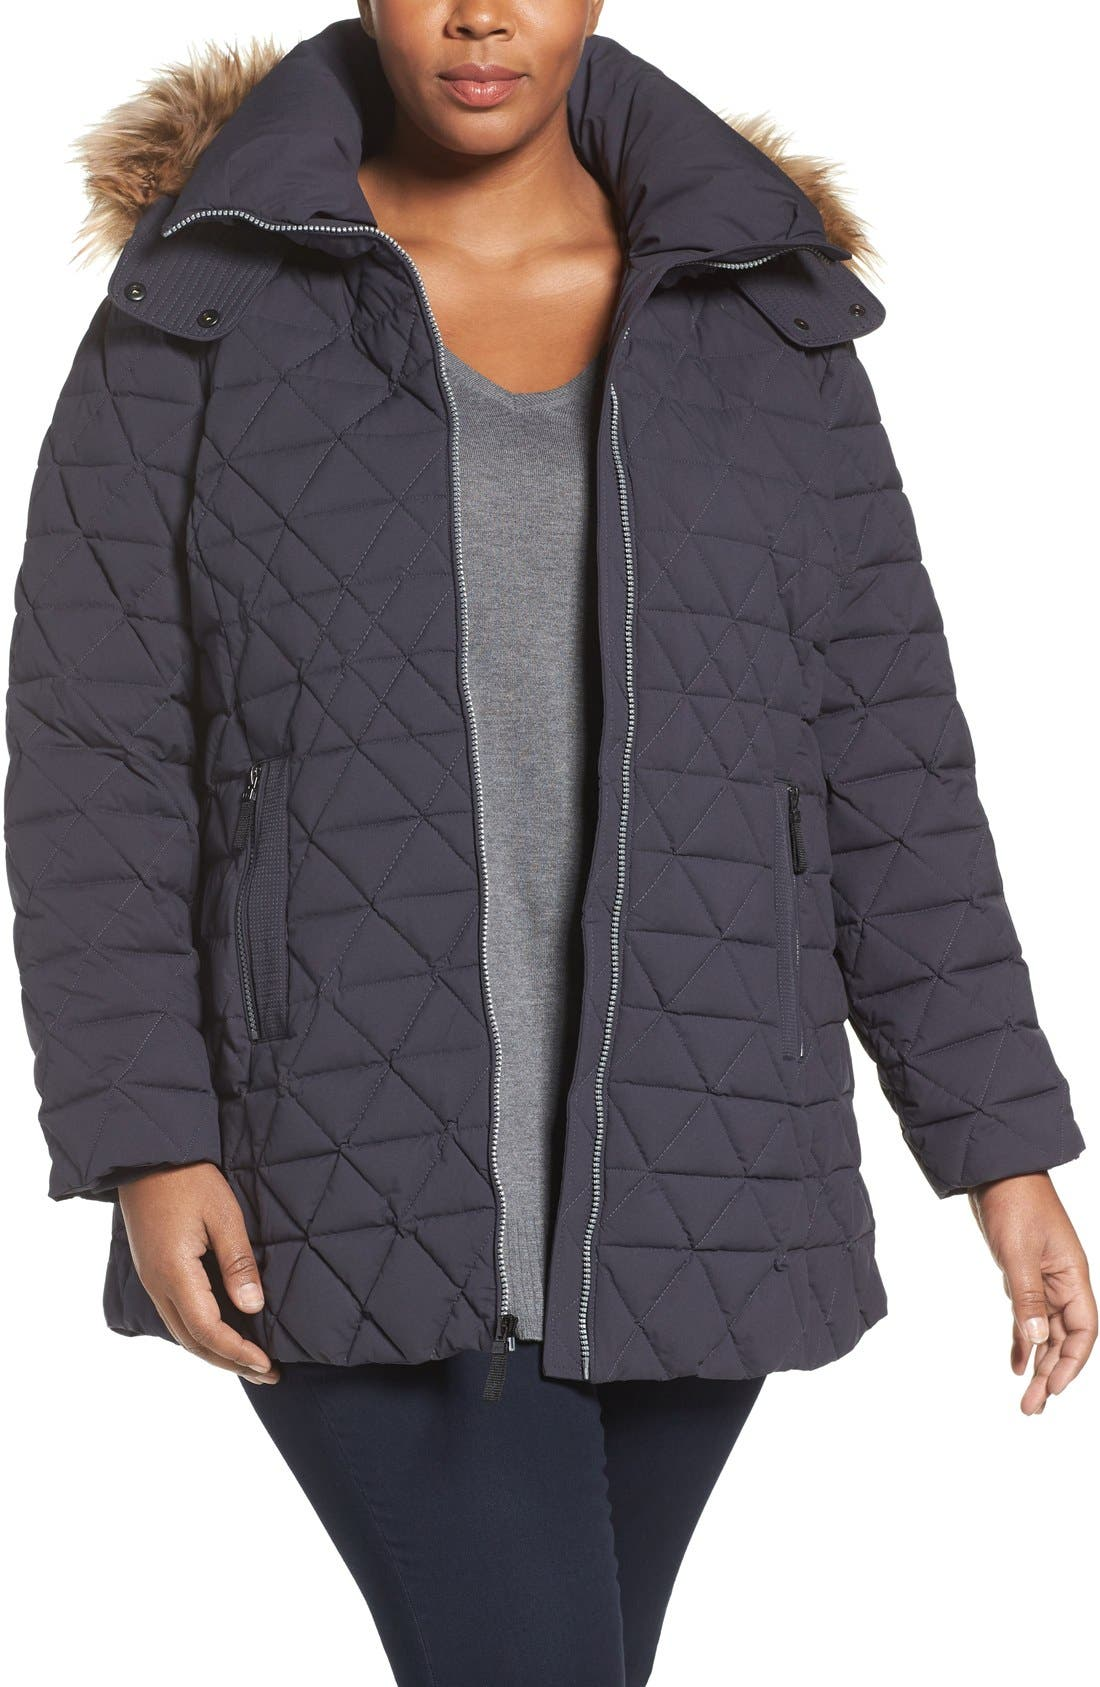 Main Image - Andrew Marc Down Jacket with Faux Fur Trim Hood (Plus Size)